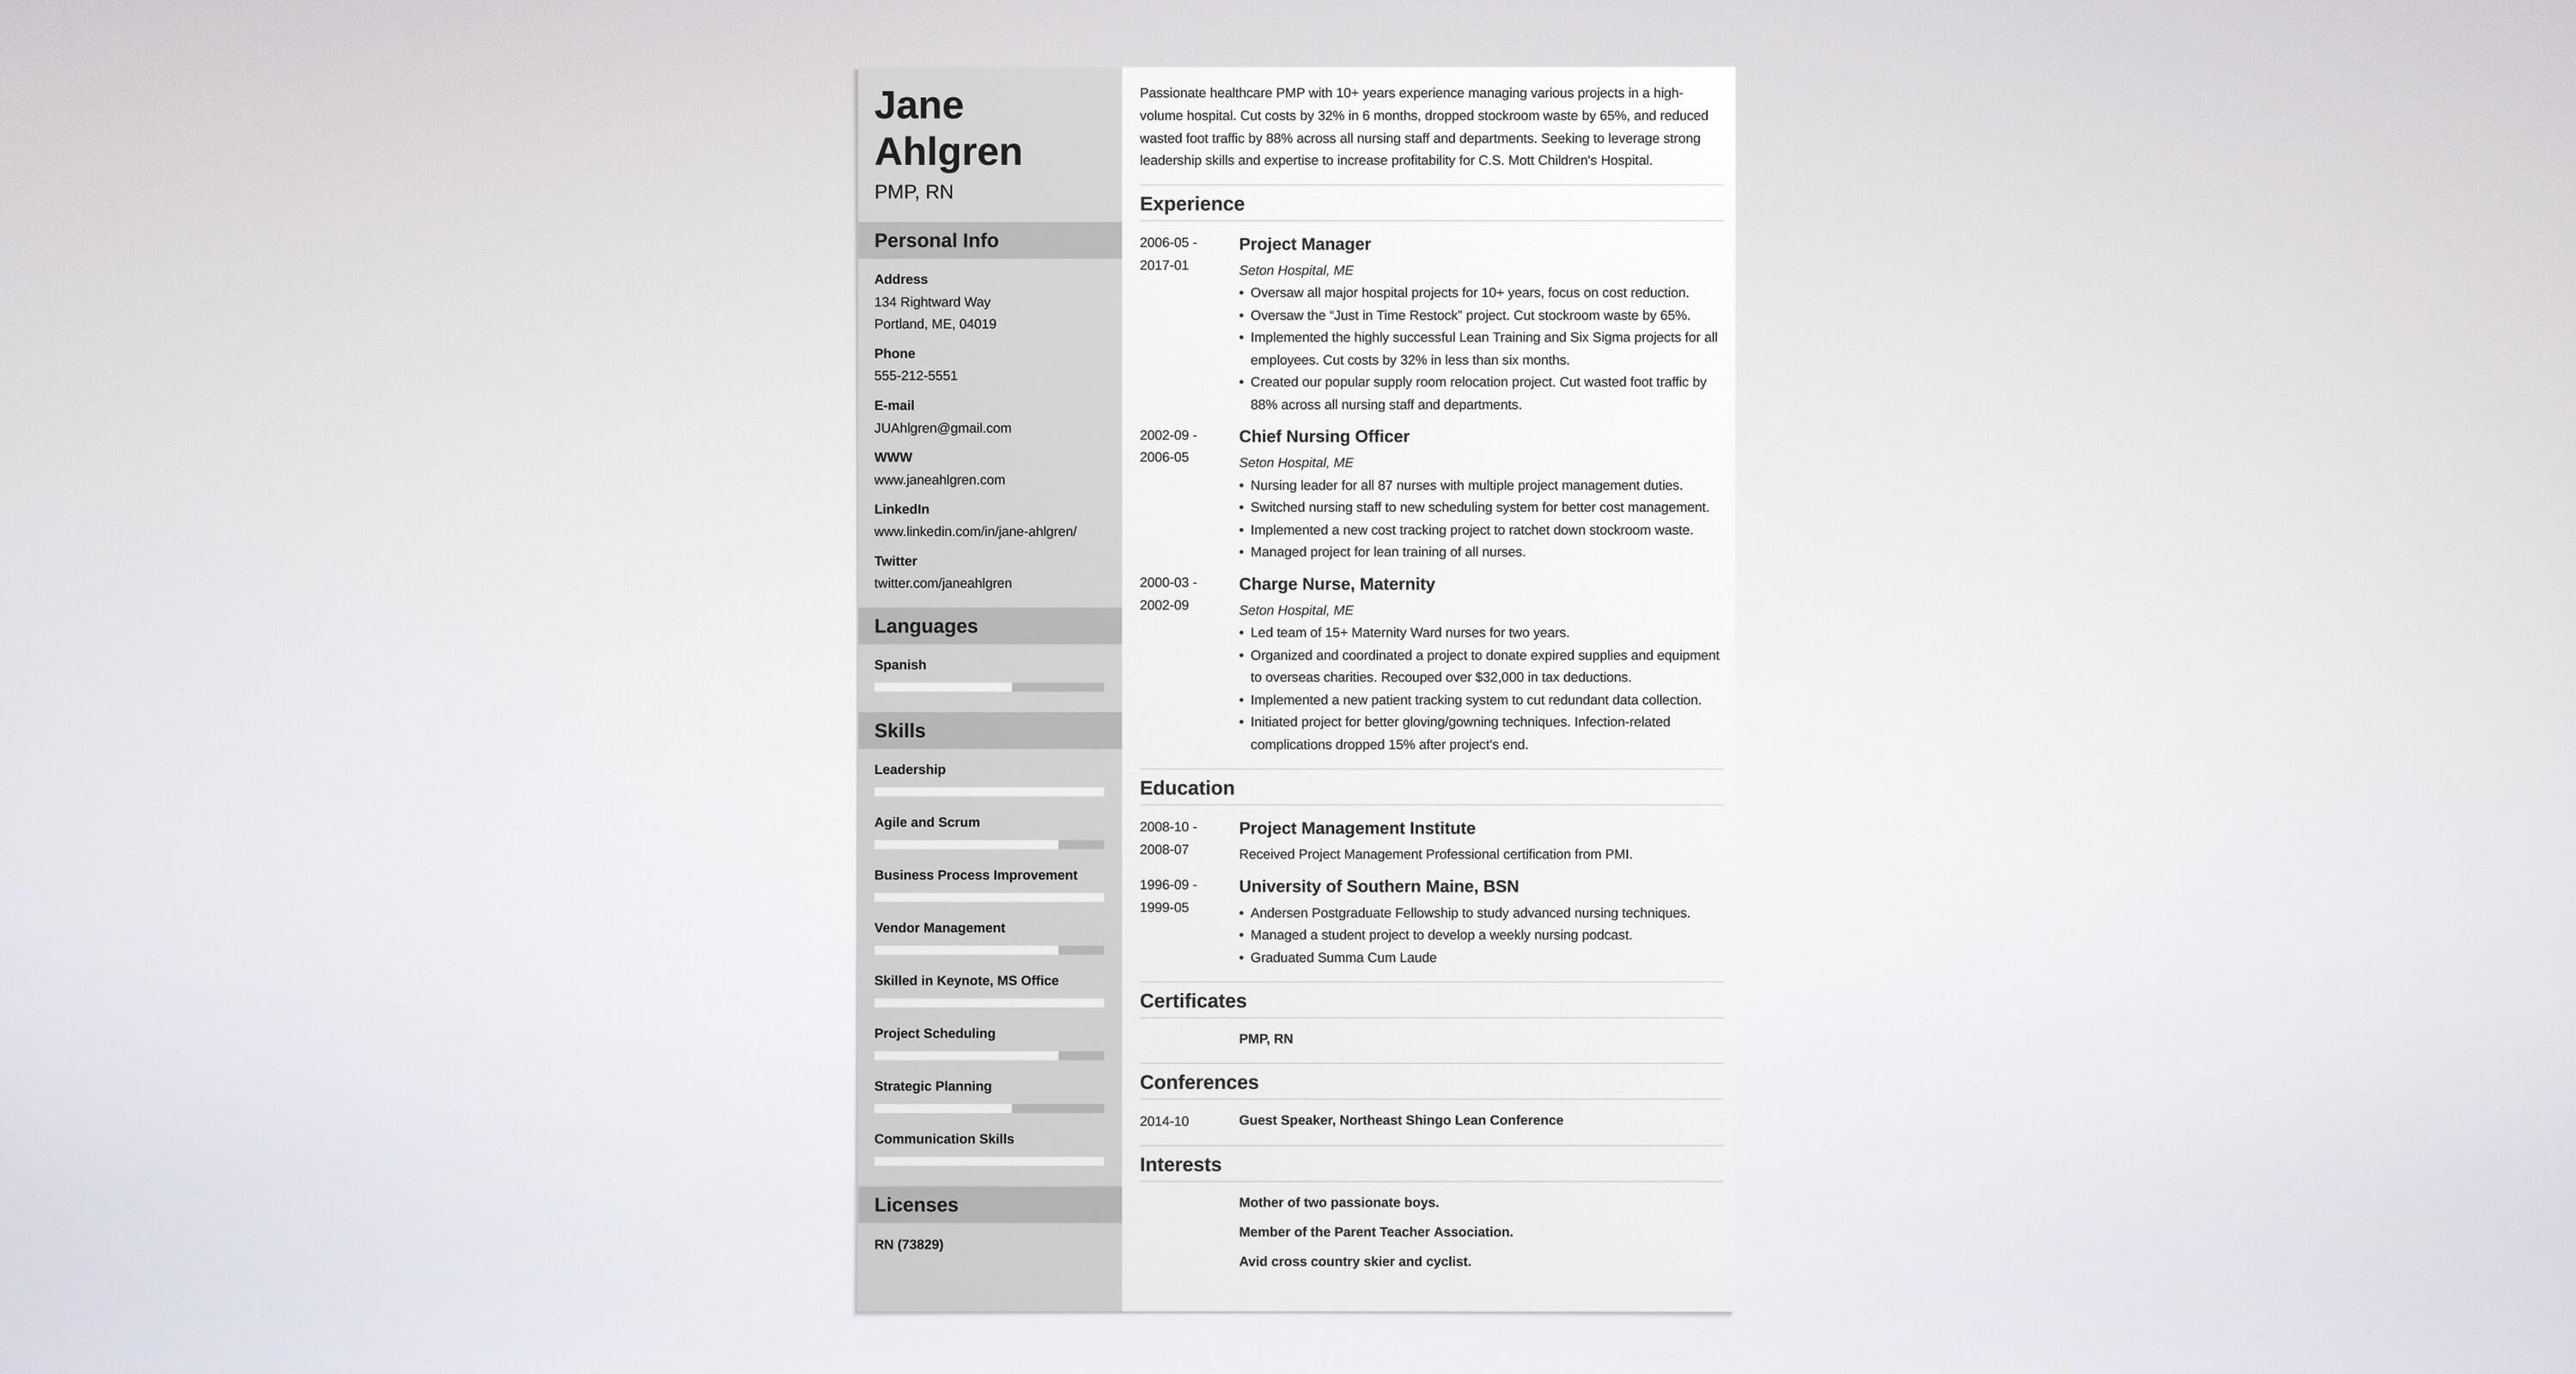 Exceptional Project Manager Resume: Sample U0026 Complete Guide [+20 Examples]